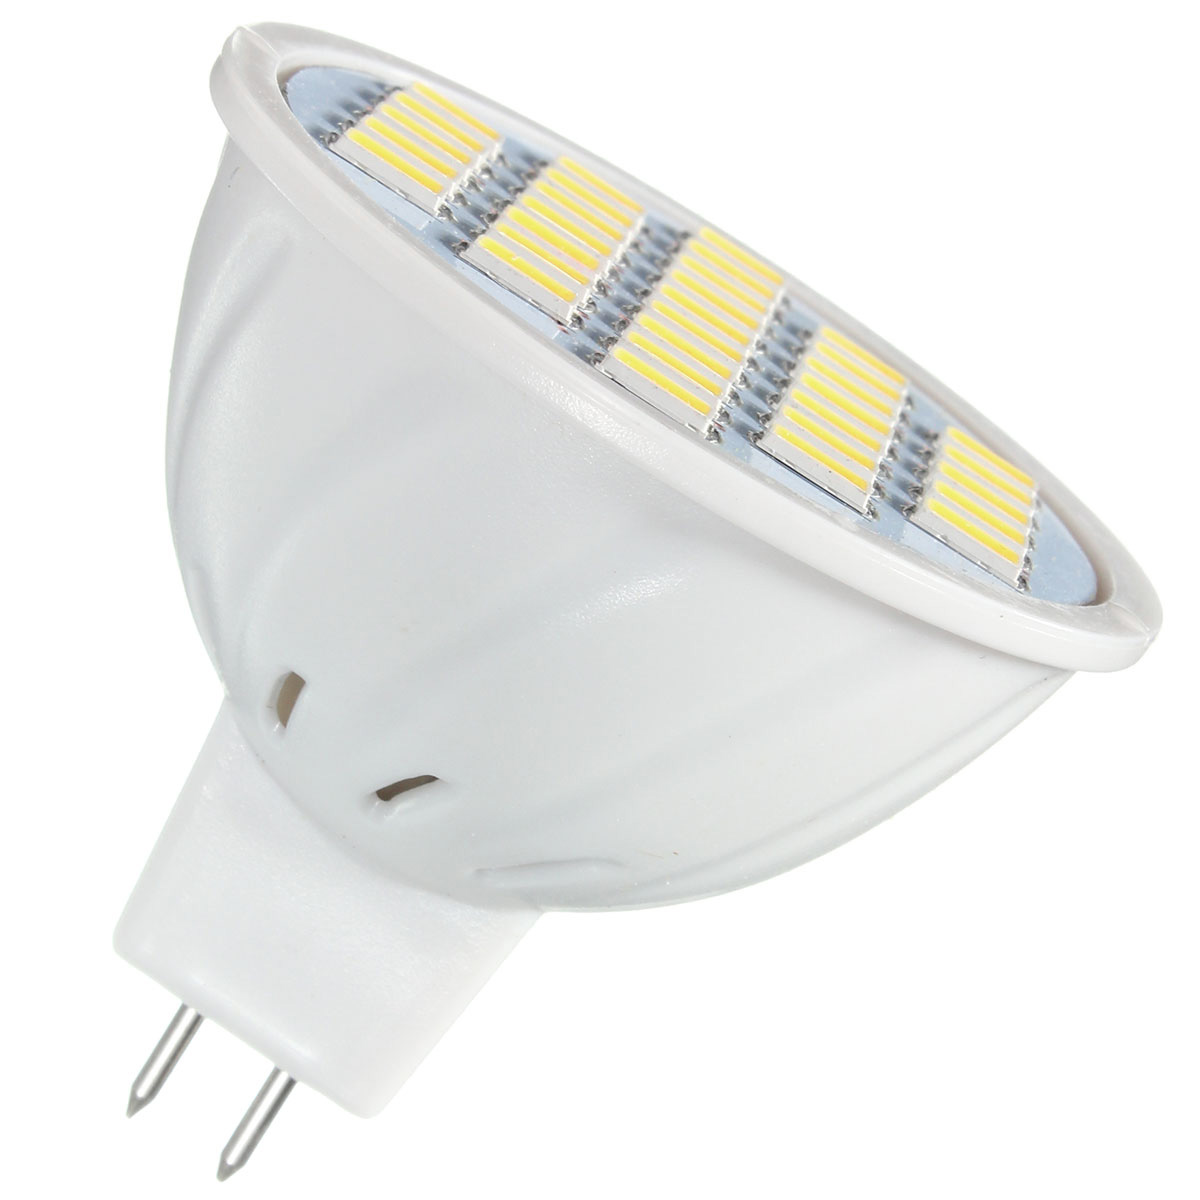 E27 E14 GU10 MR16 4W 5730 SMD 33 400LM Pure White Warm White LED Spot Lightt Lamp Bulb AC85-265V